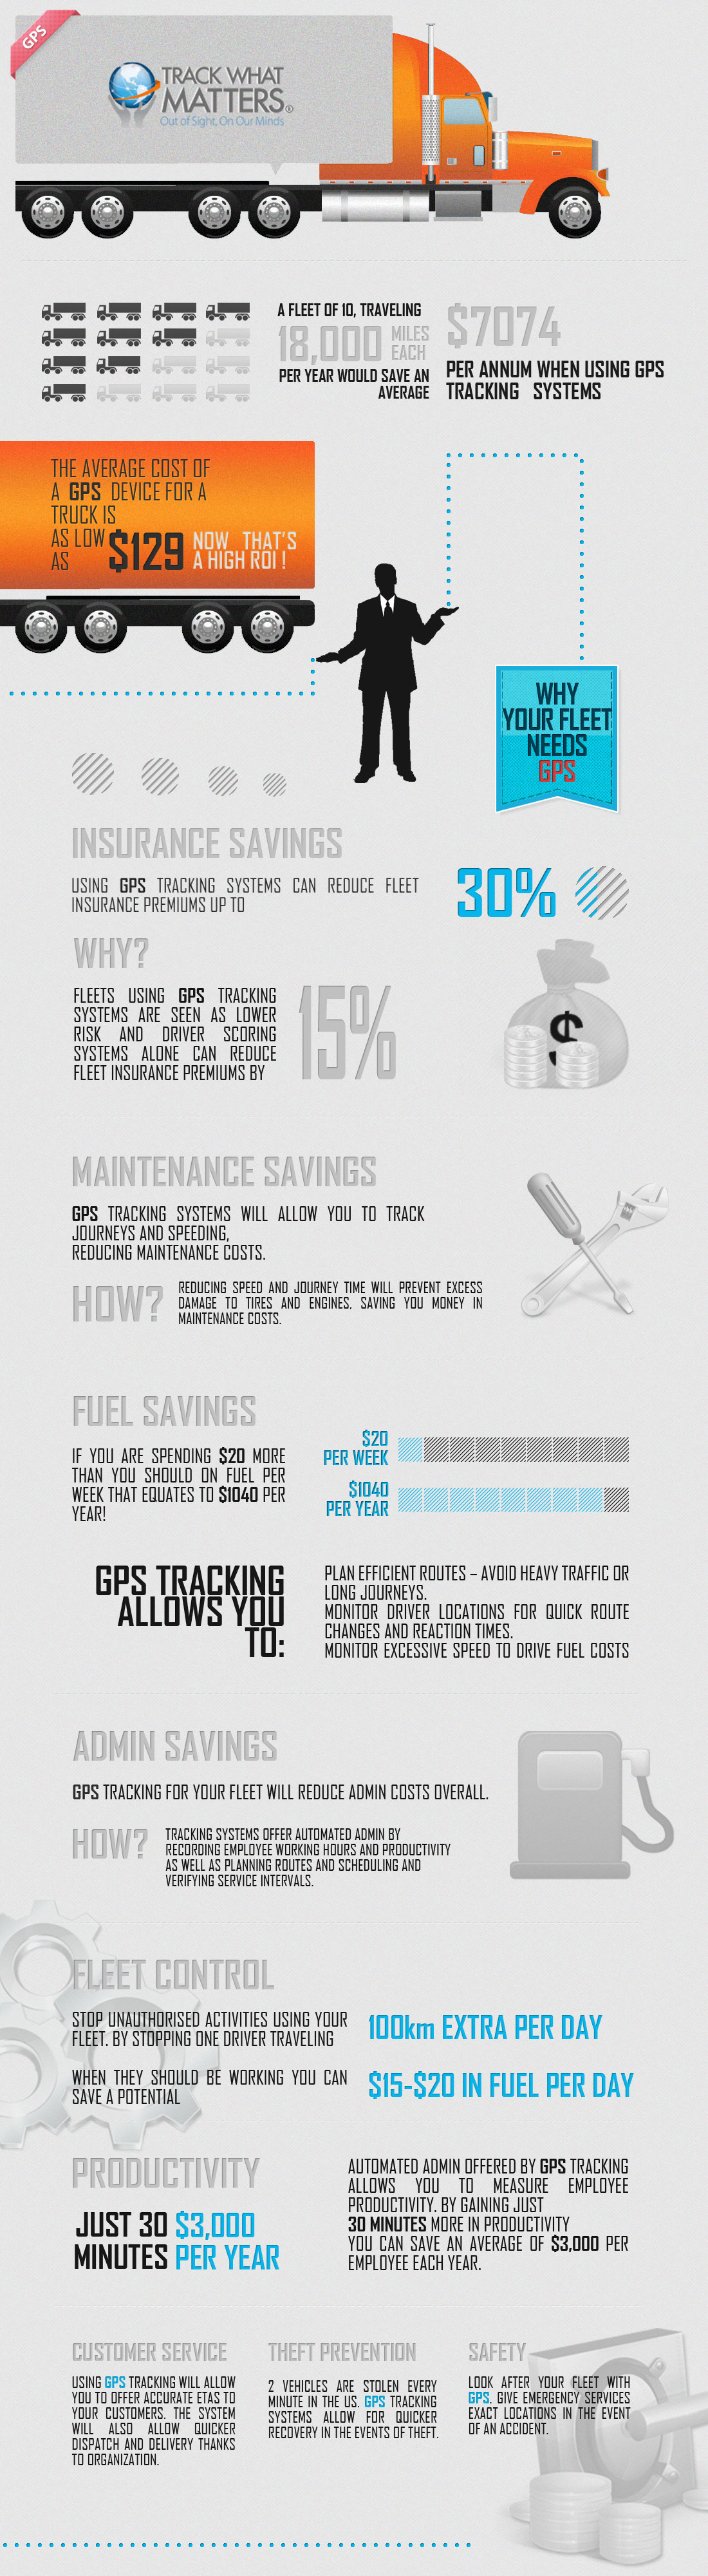 Infographic: GPS Tracking Saves Money